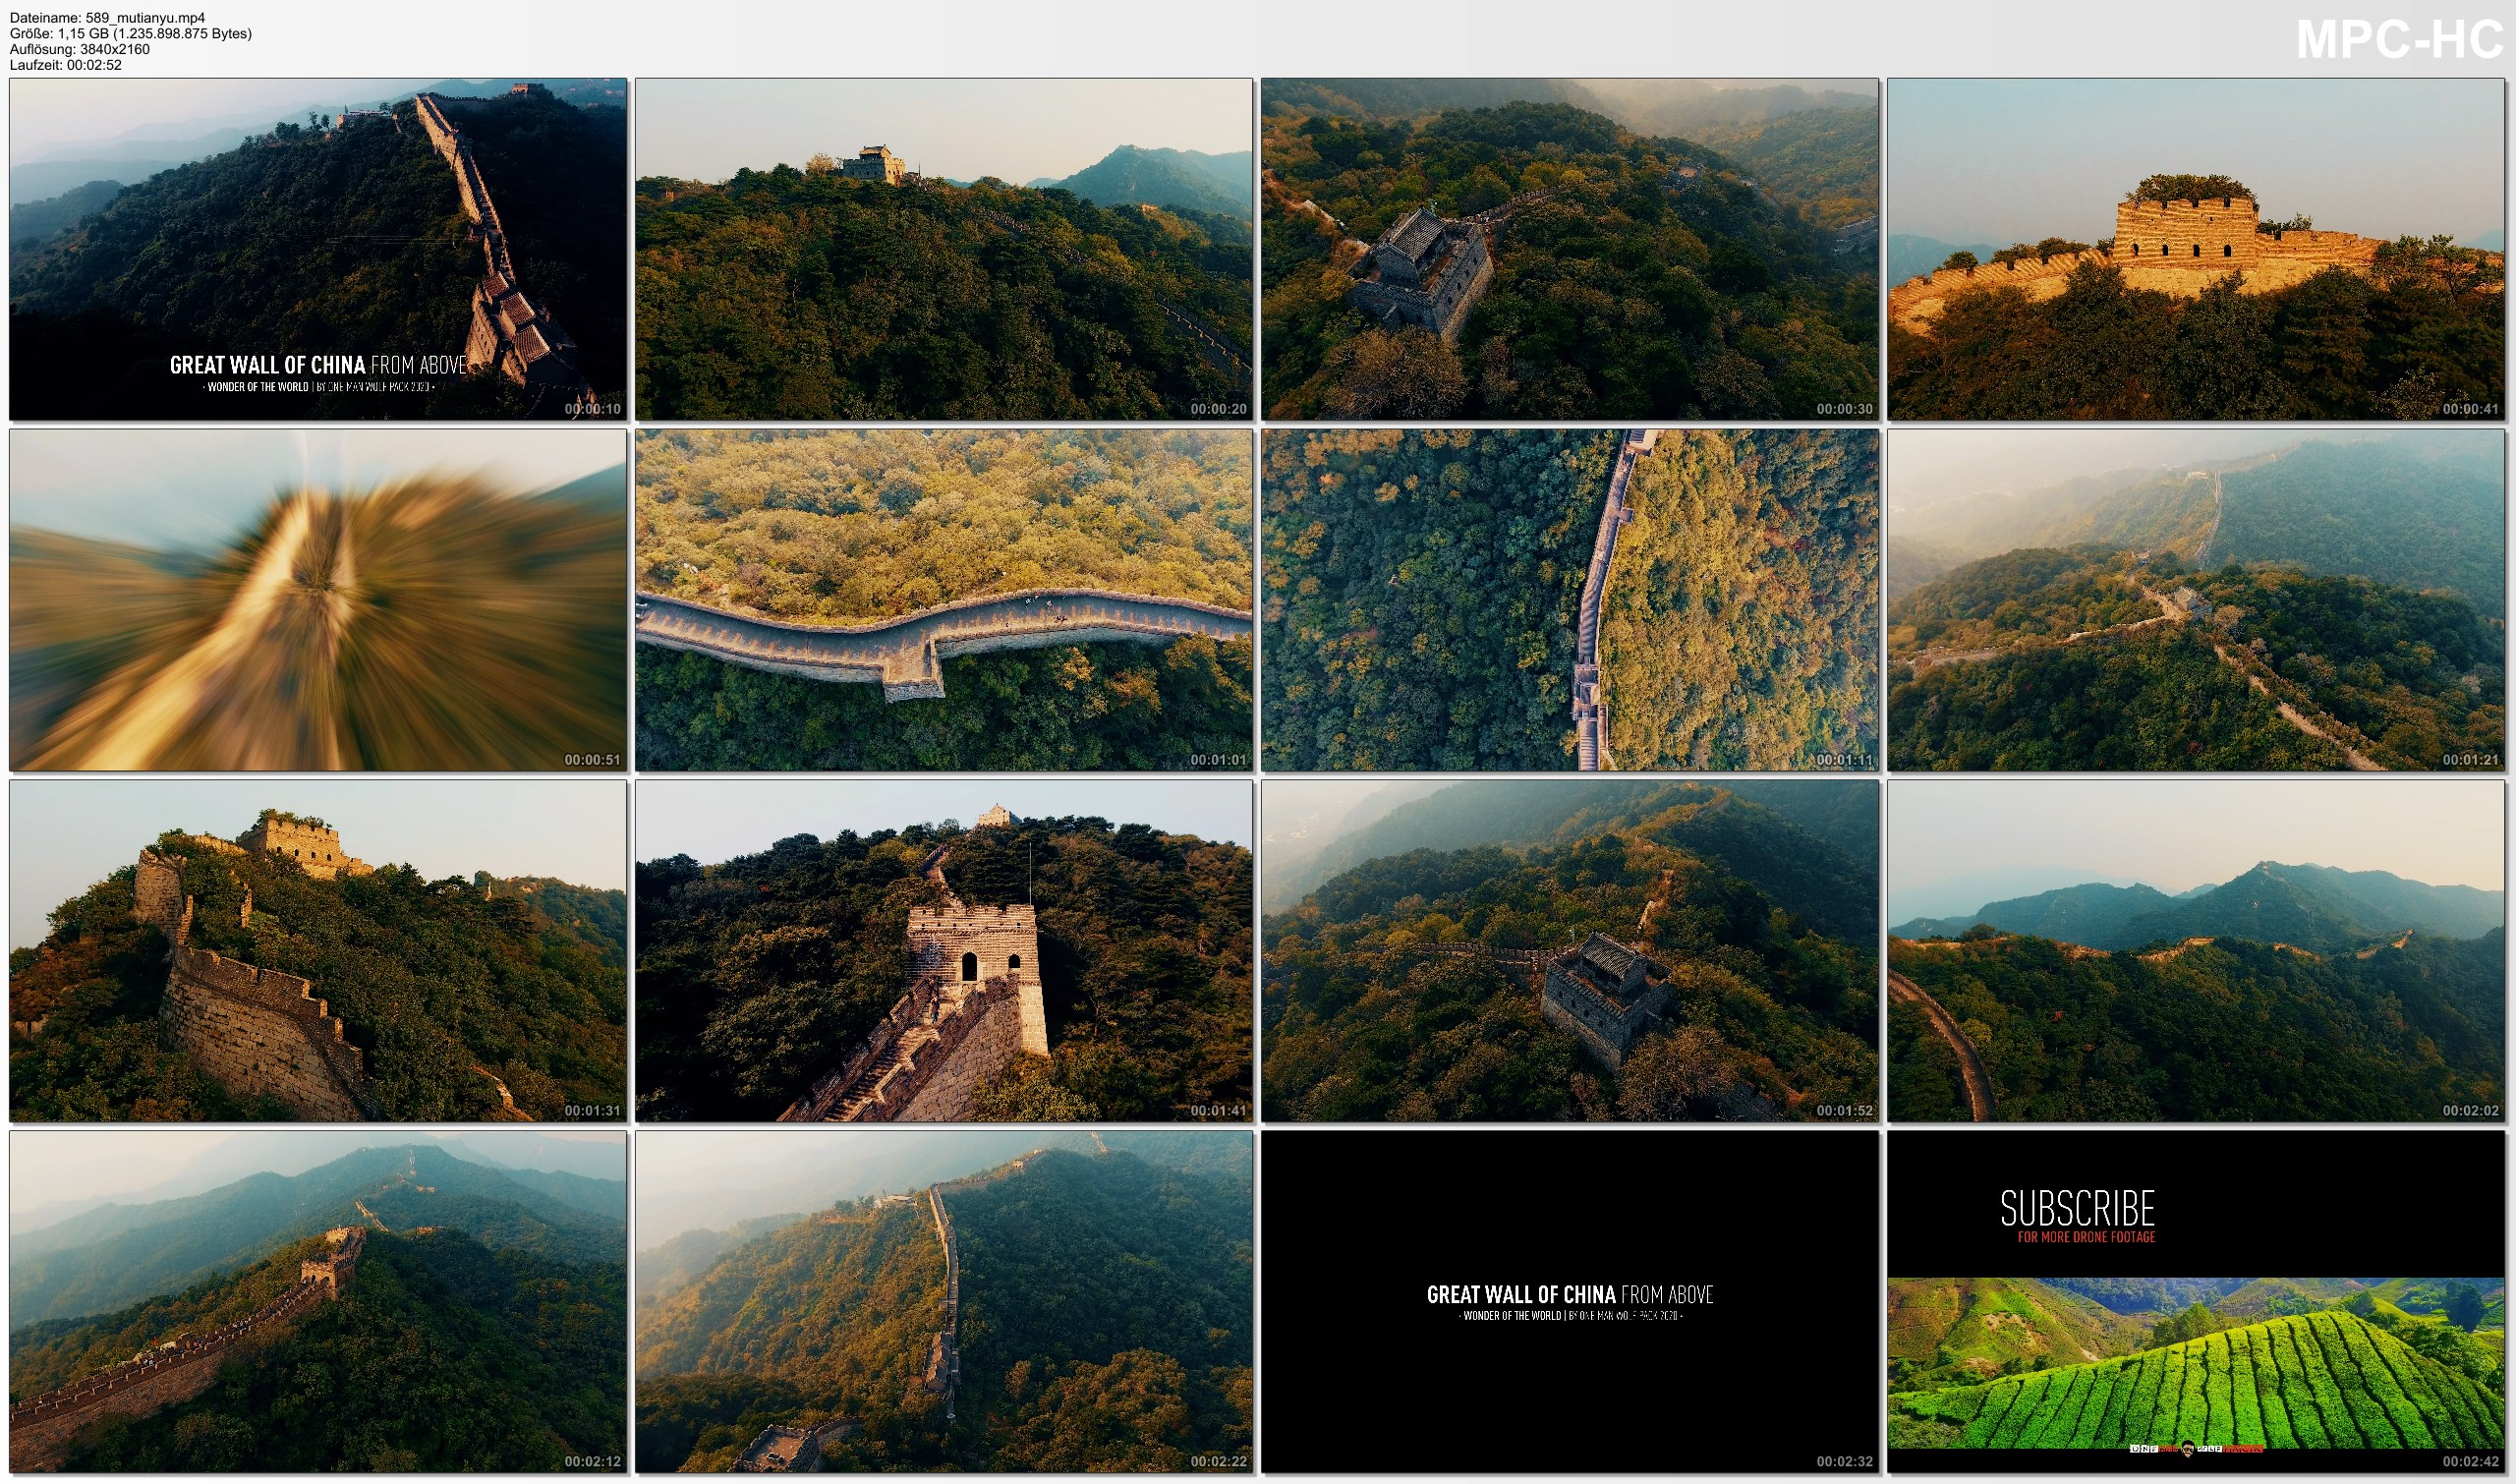 Drone Pictures from Video 【4K】The Great Wall of China from Above 2020 | Cinematic Wolf Aerial™ Drone Film